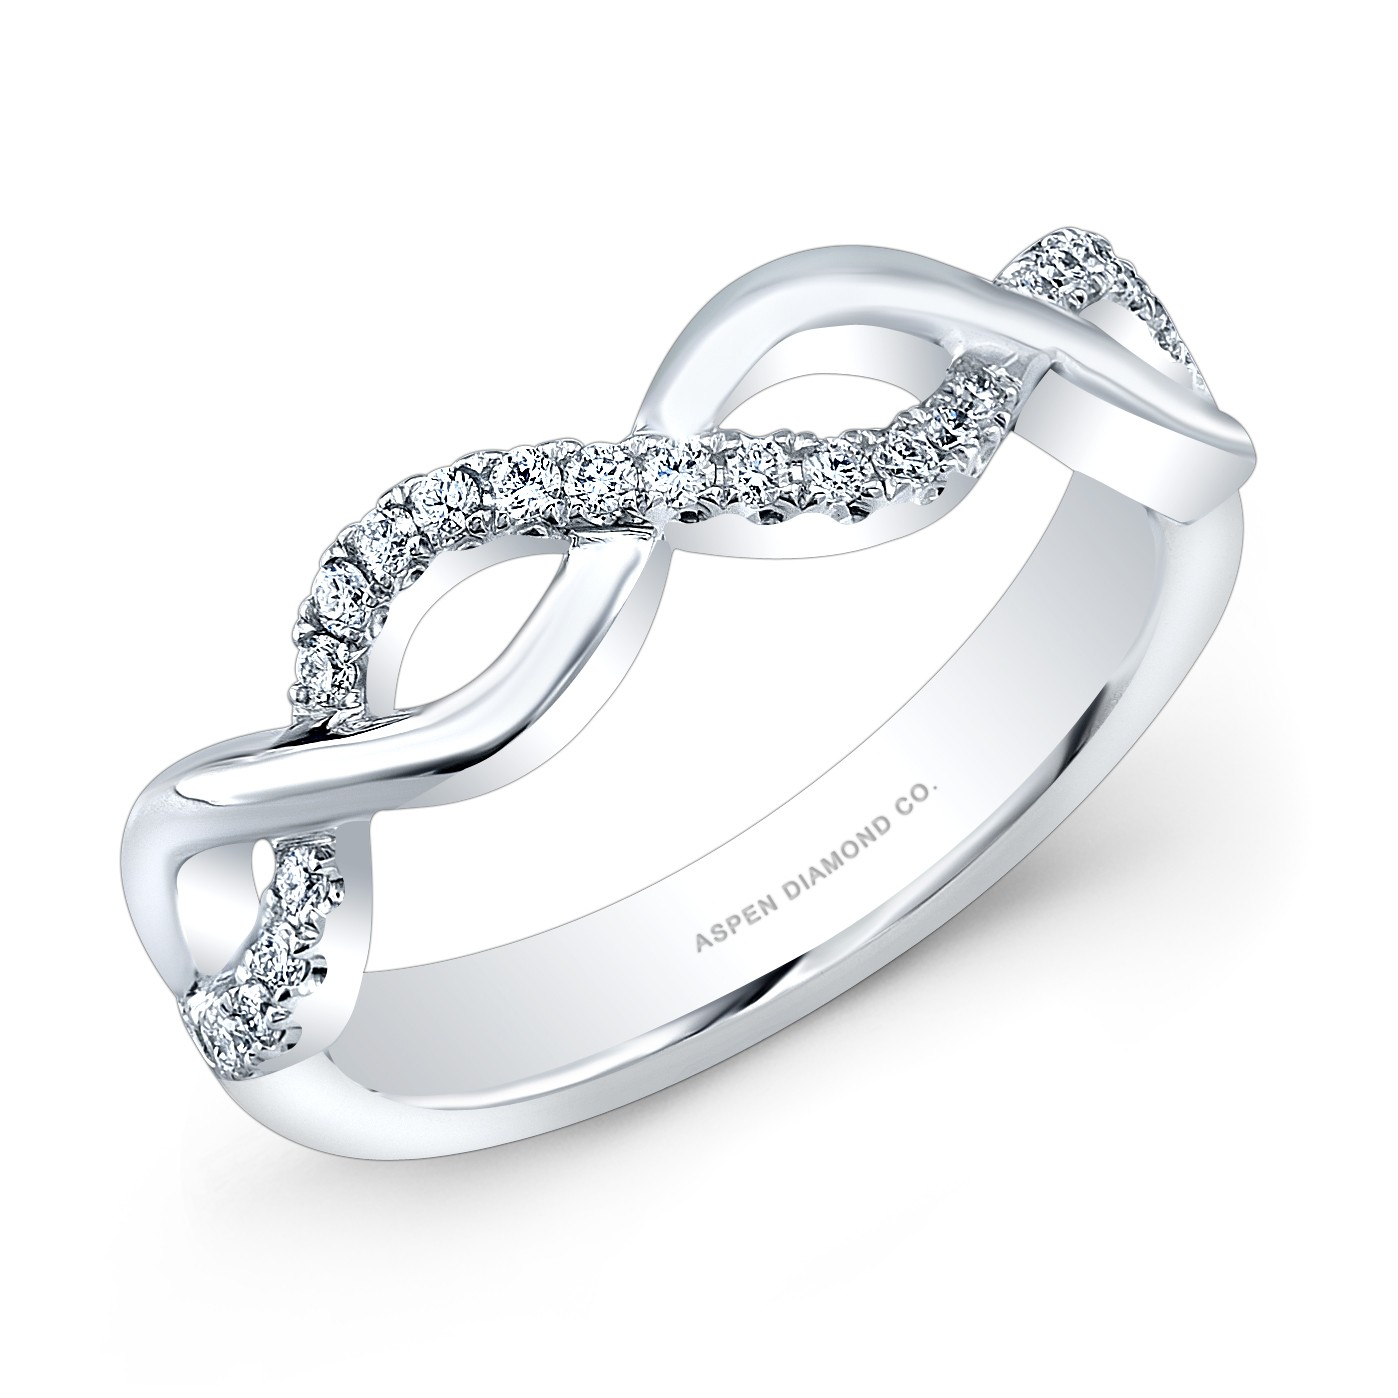 Round Pave Diamond Wedding Band in 18K White Gold